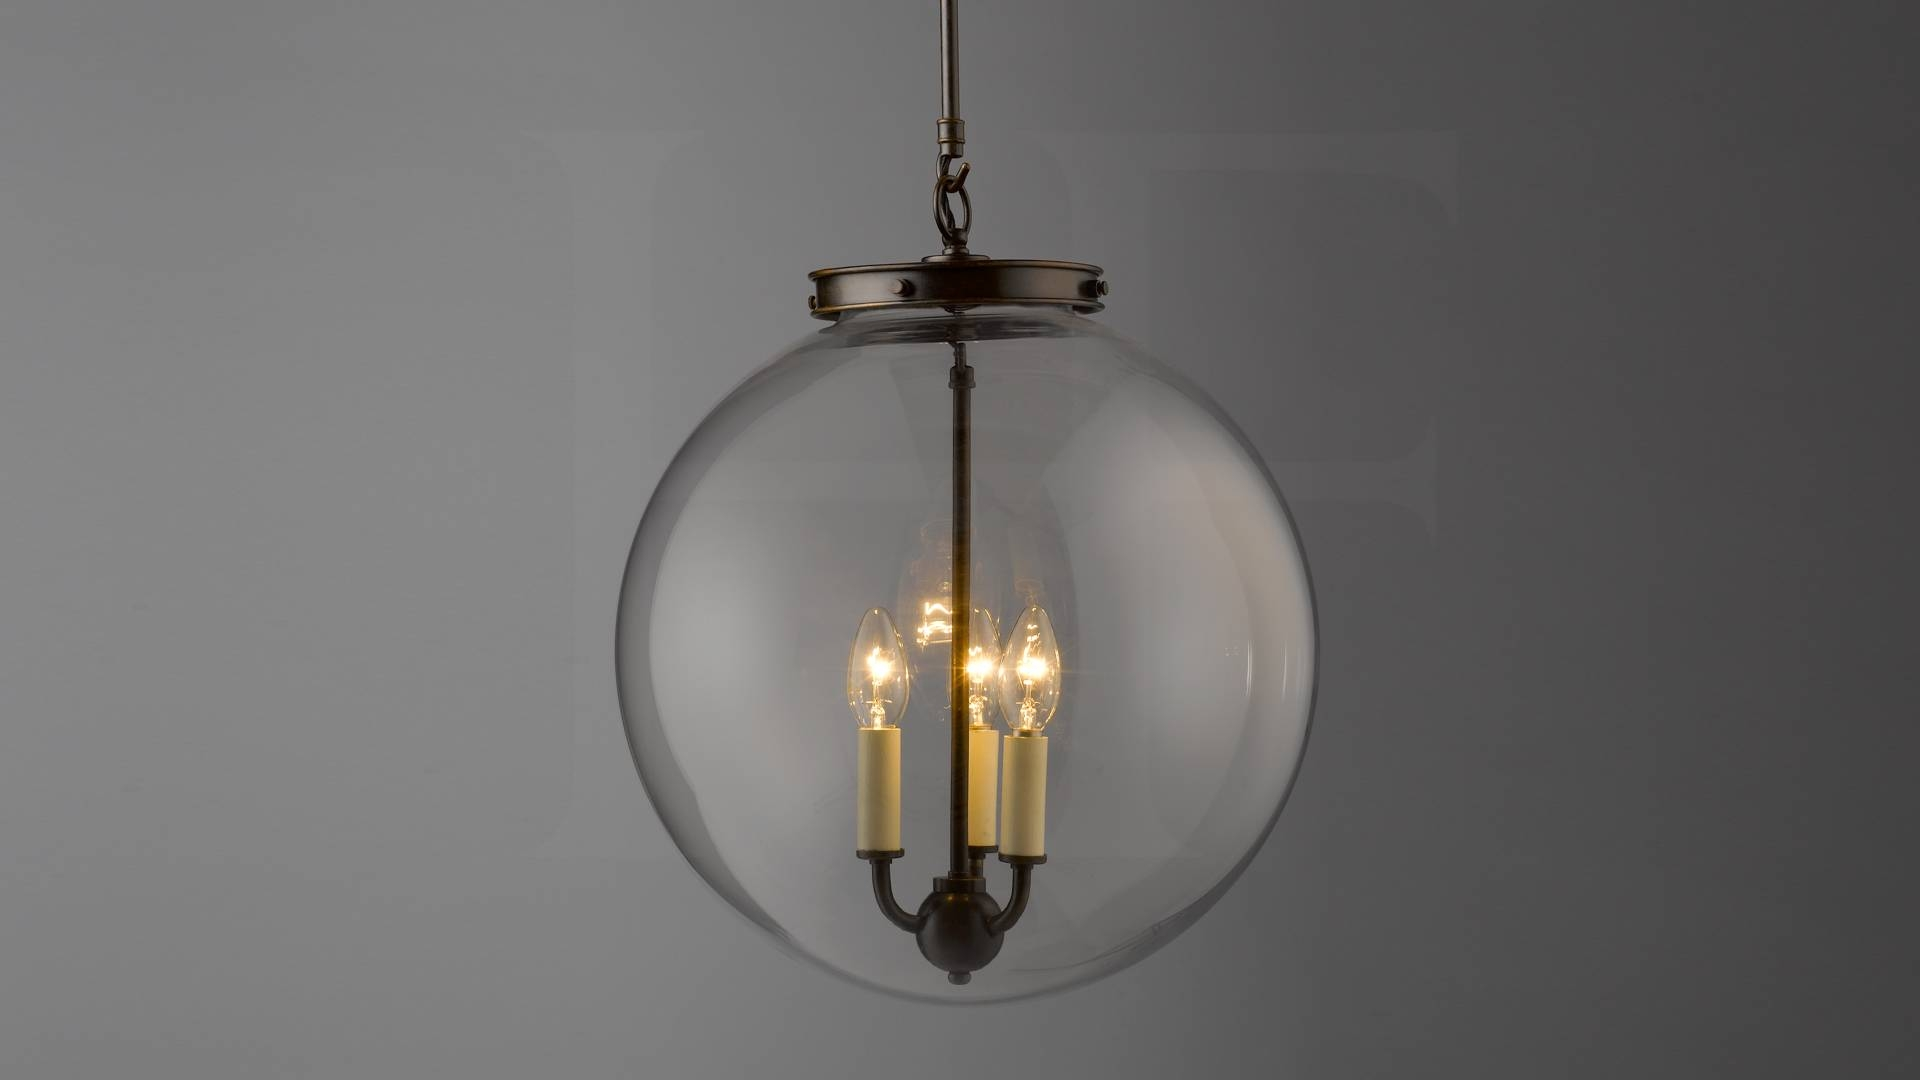 Excellent Glass Globe Pendant Light Ideas — All About Home Design Throughout Glass Ball Pendant Lights (View 10 of 15)